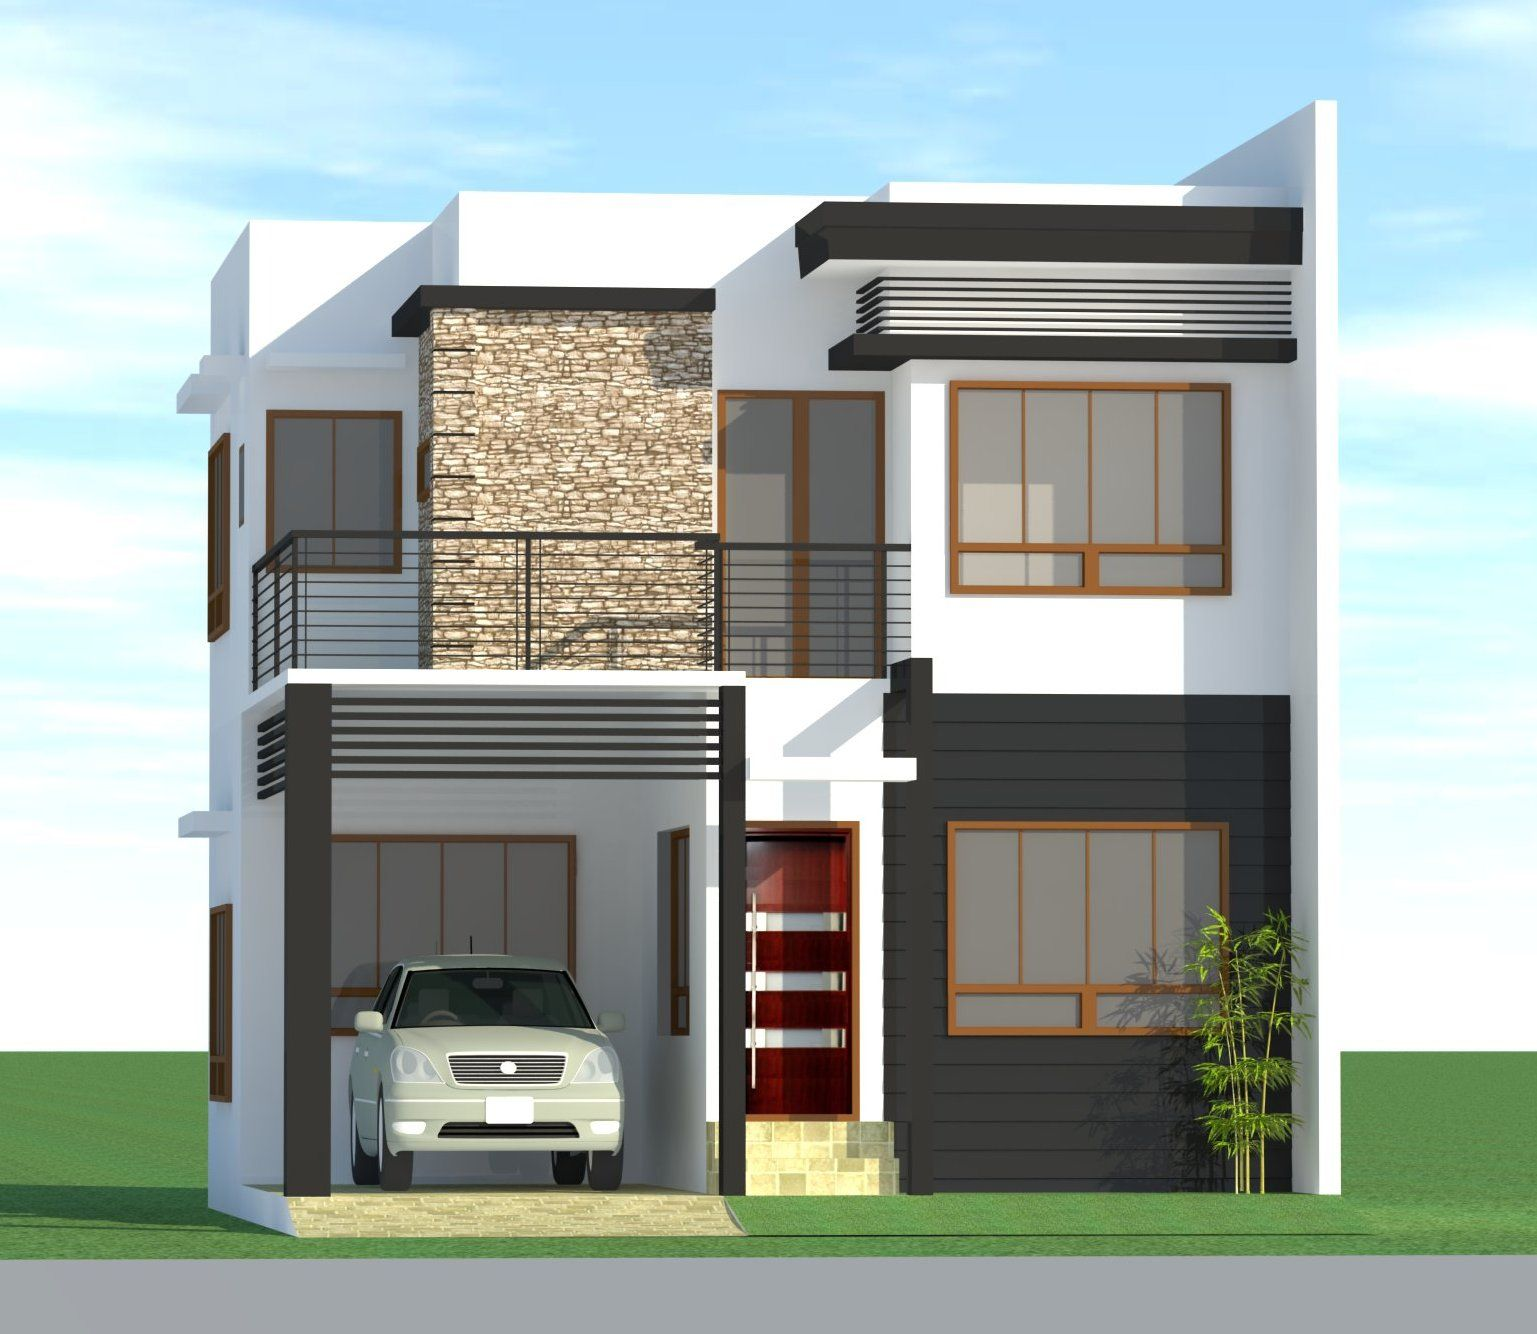 Philippines house design images 3 home design ideas for Latest house design 2016